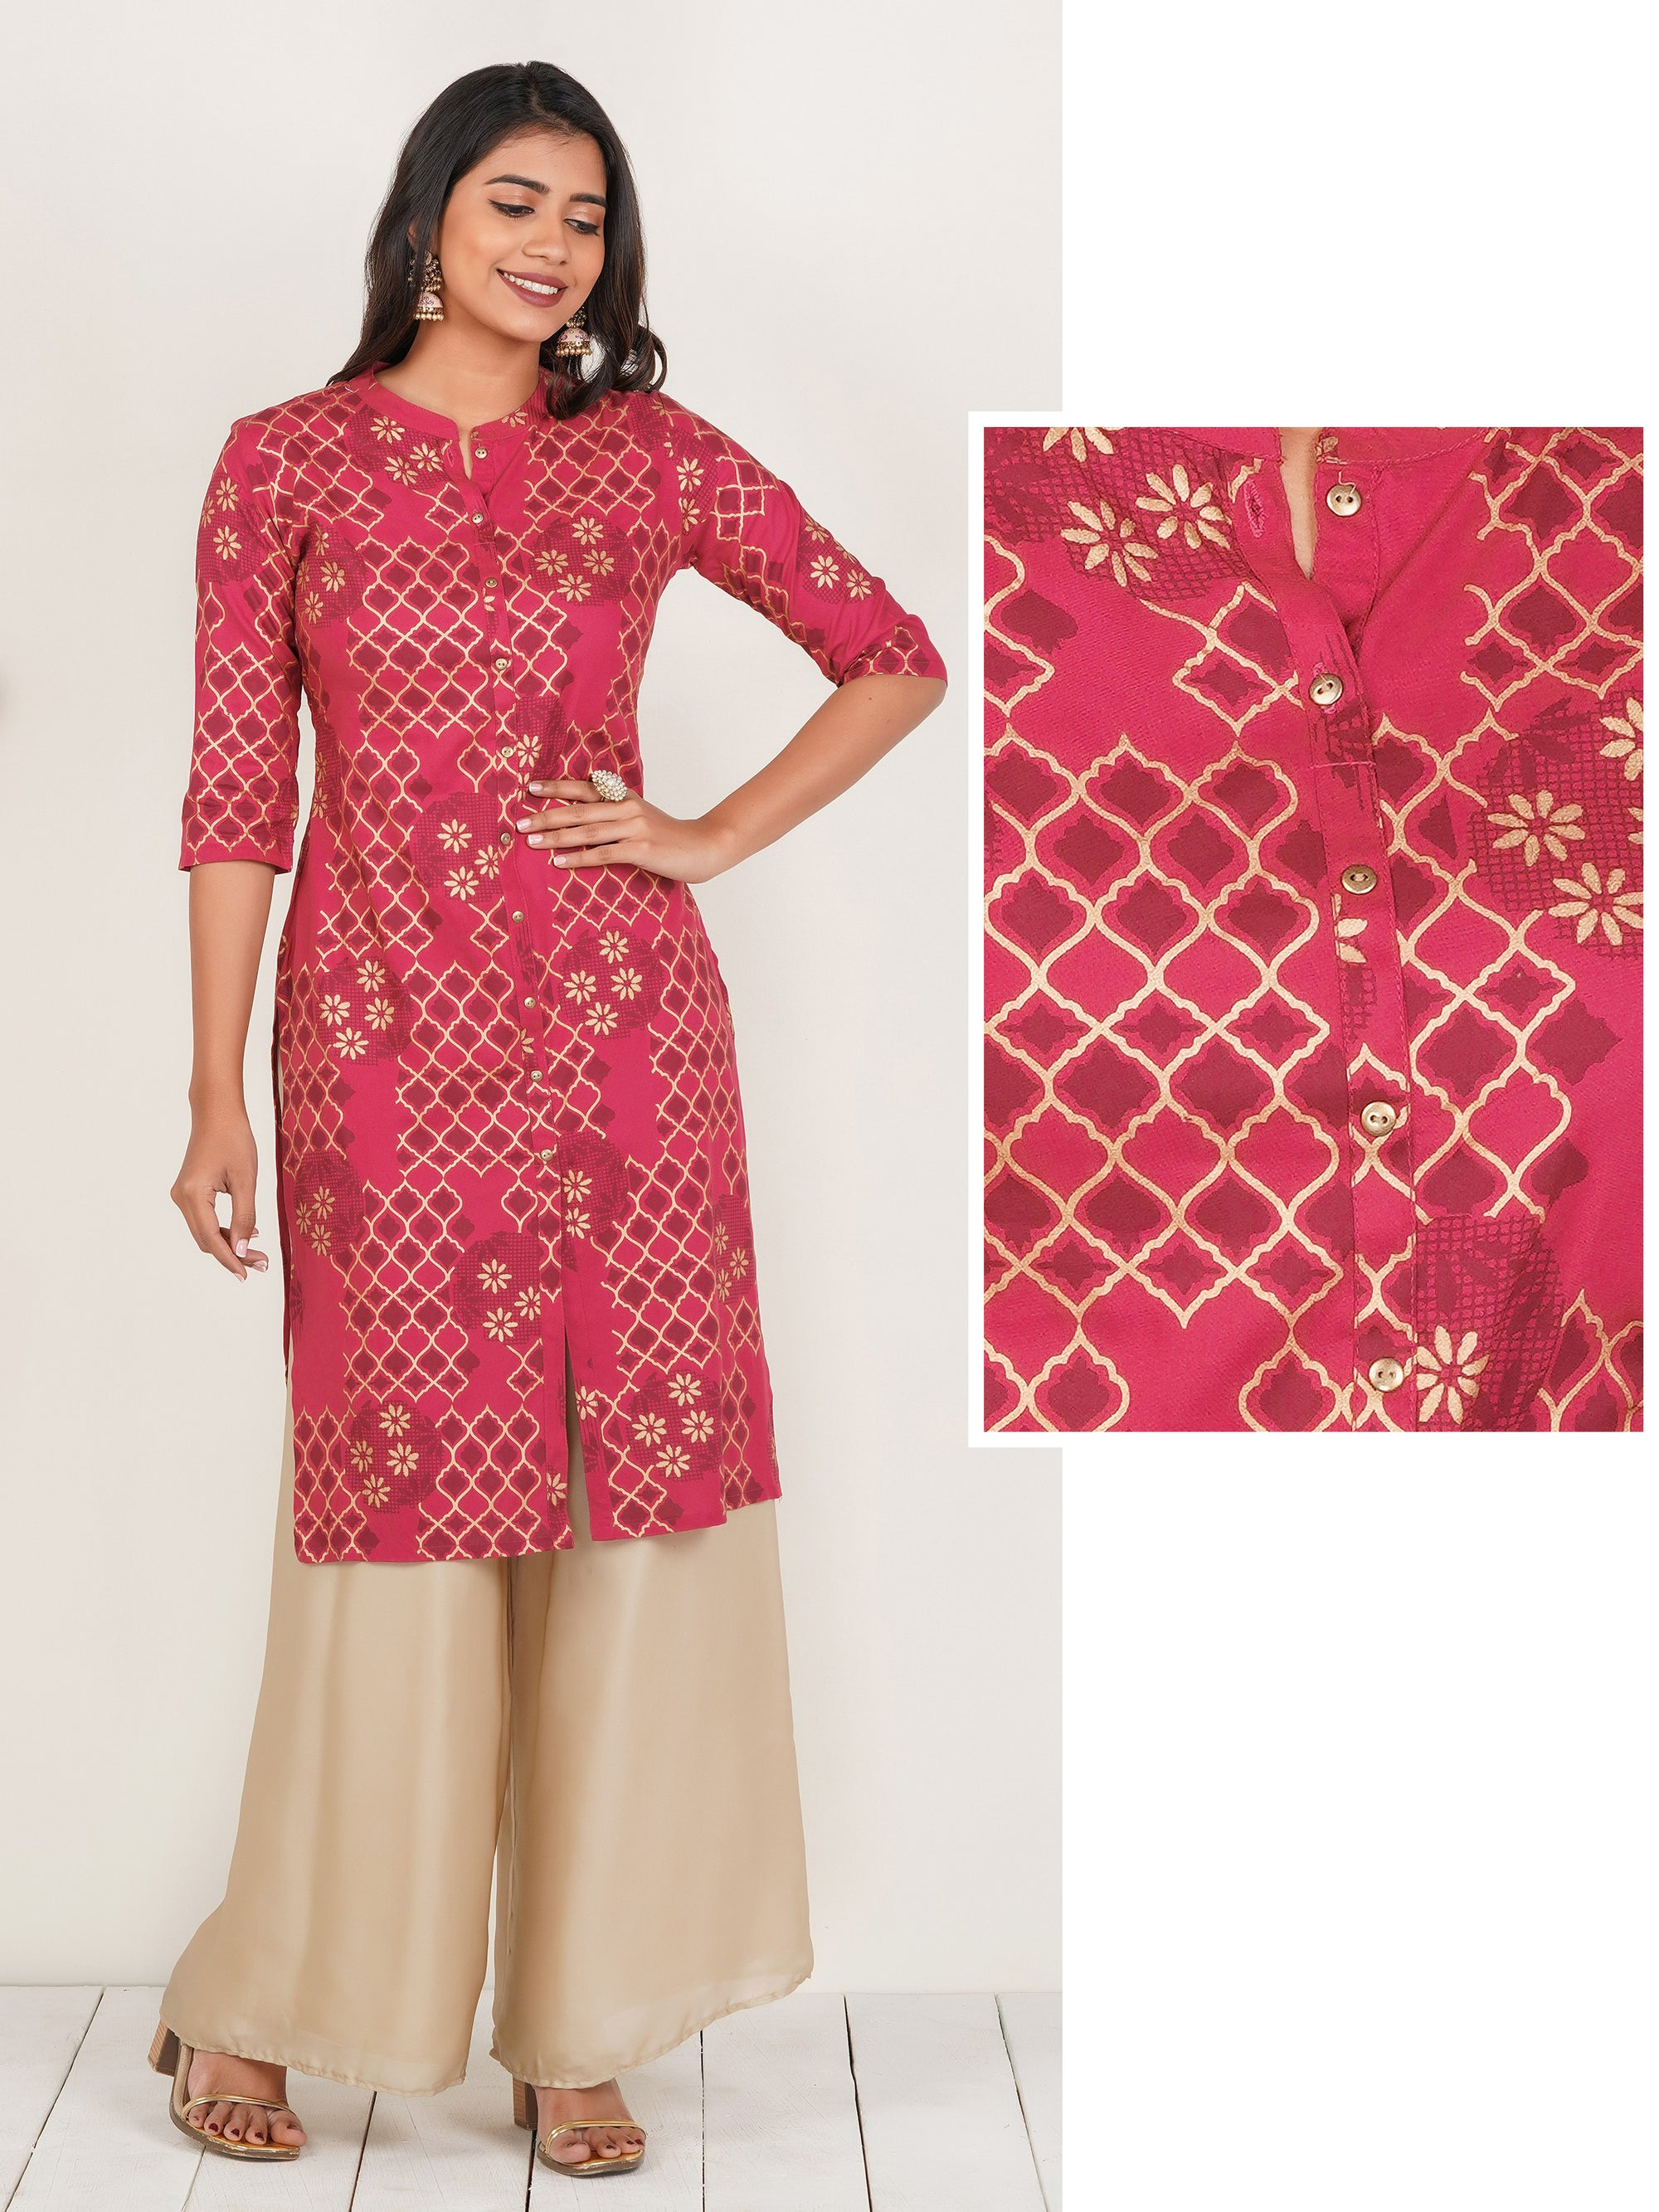 Shadow & Floral Printed Cotton Kurti – Pink